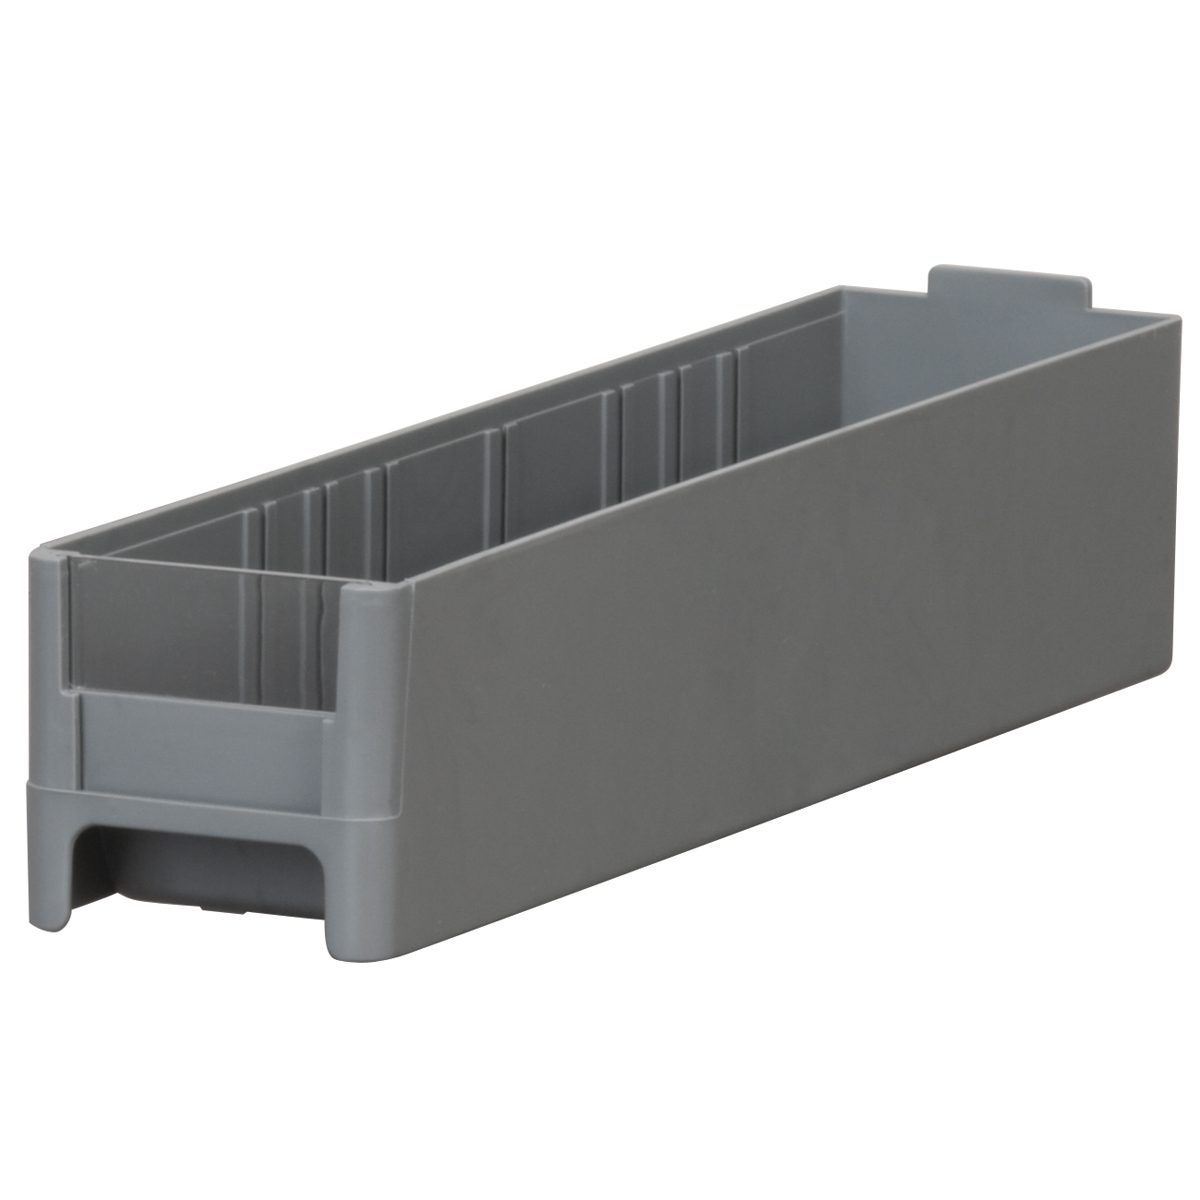 19-Series Cabinet Drawer 2-3/16 x 2-1/16 x 10-9/16, Gray.  This item sold in carton quantities of 56.